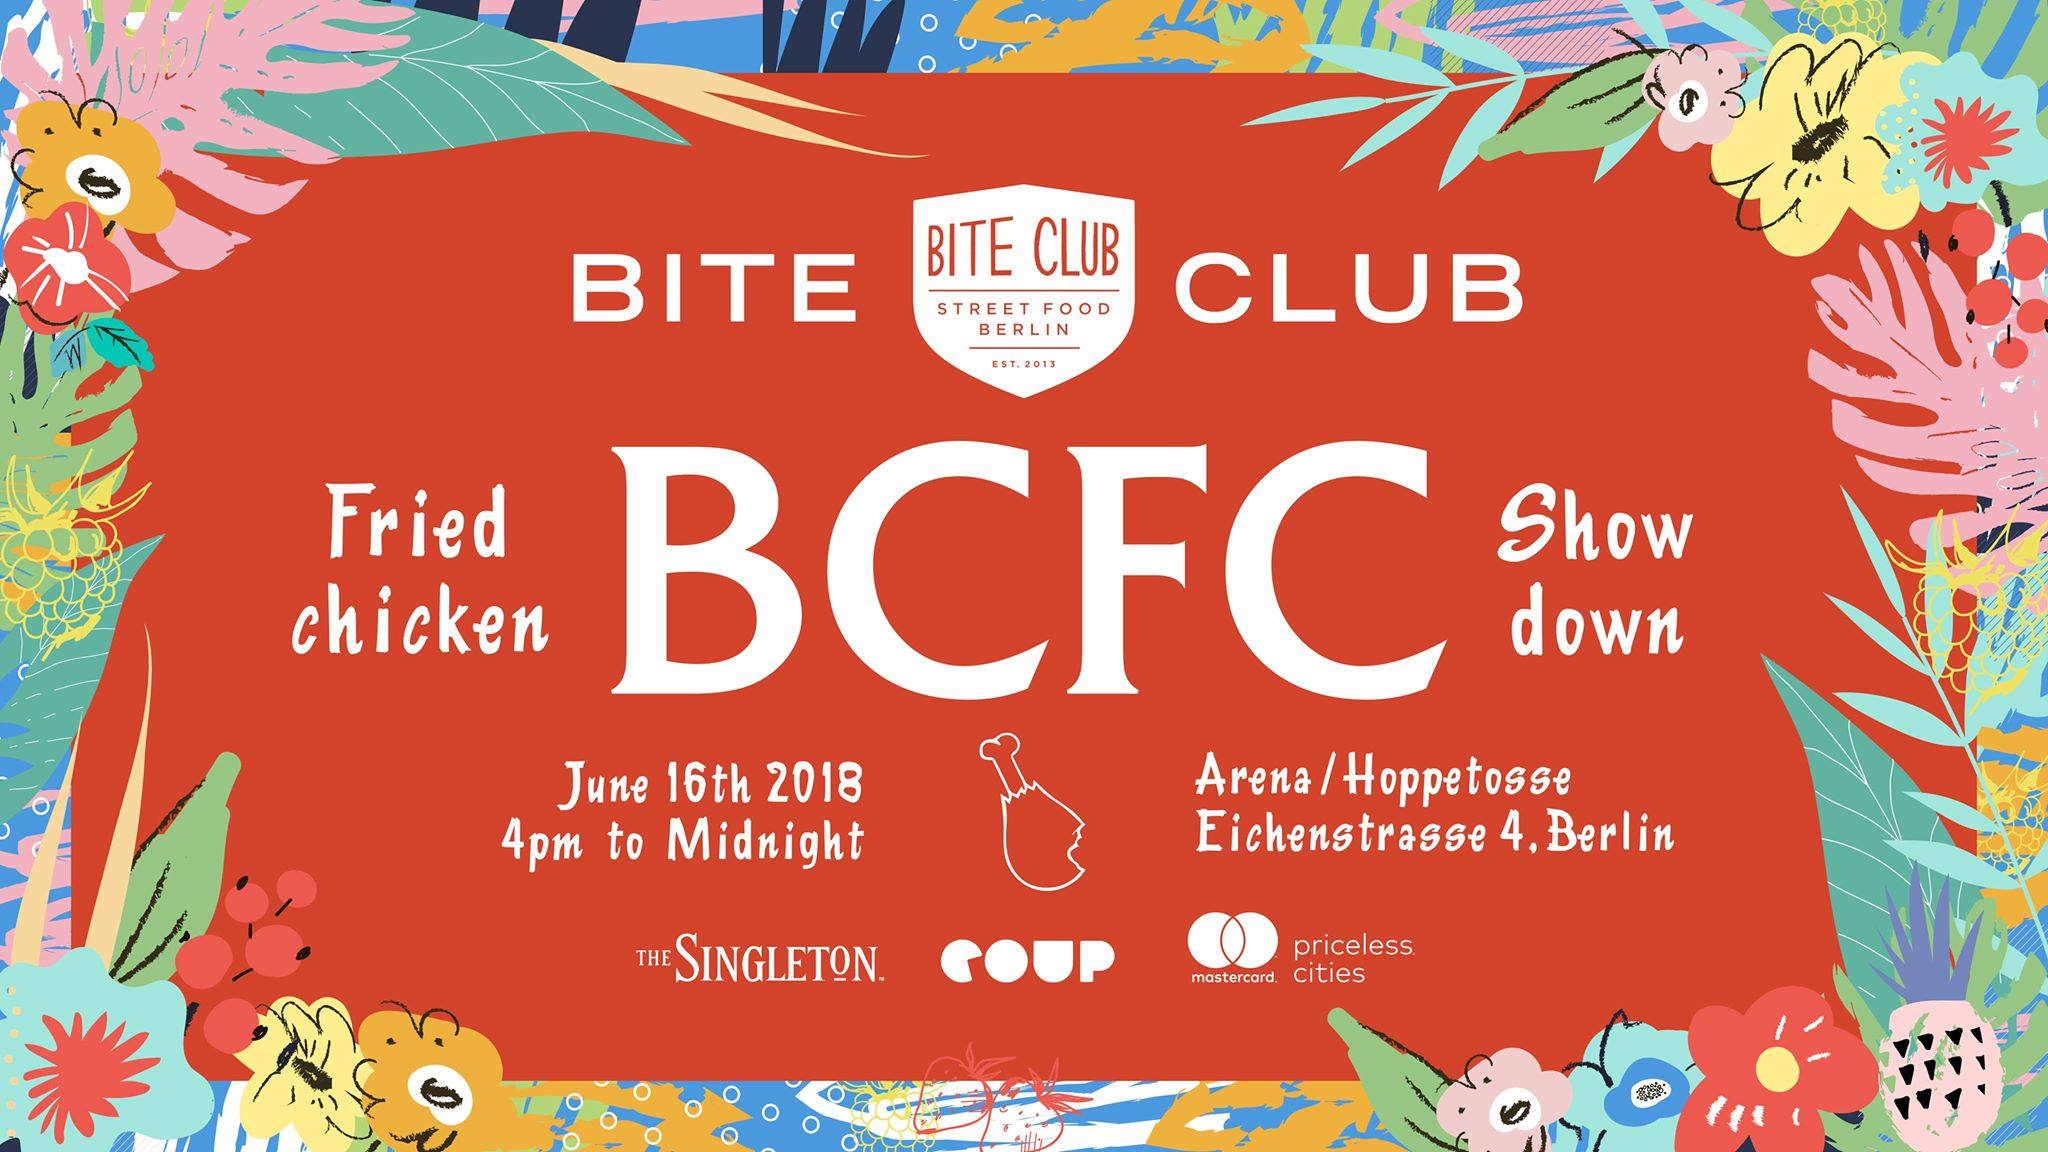 Bite Club Berlin Fried Chicken